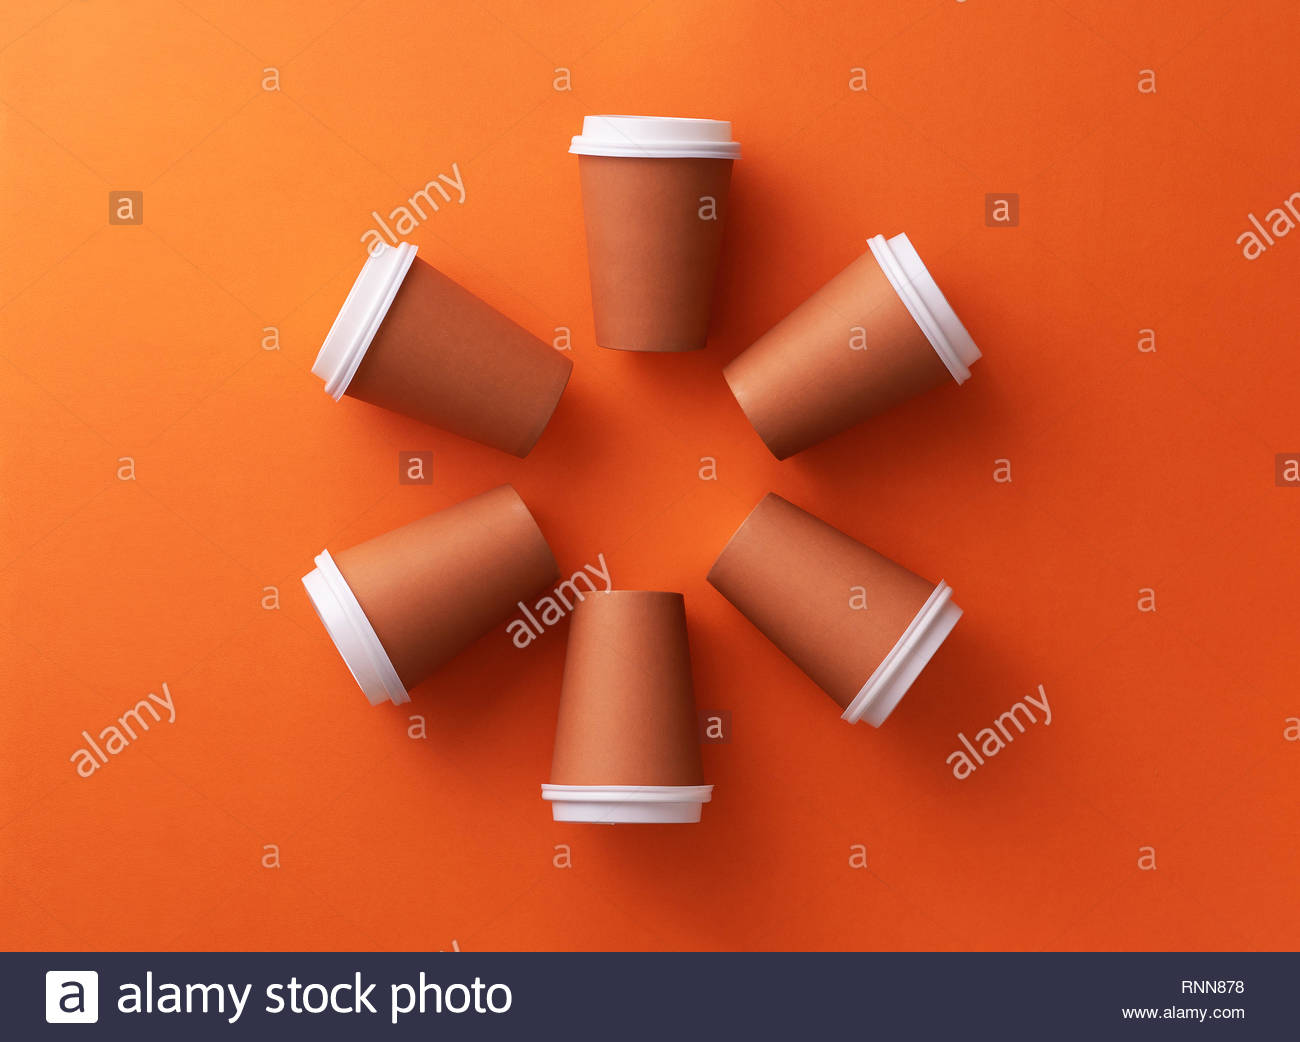 Multiple disposable coffee cups organized in a circle orange 1300x1042